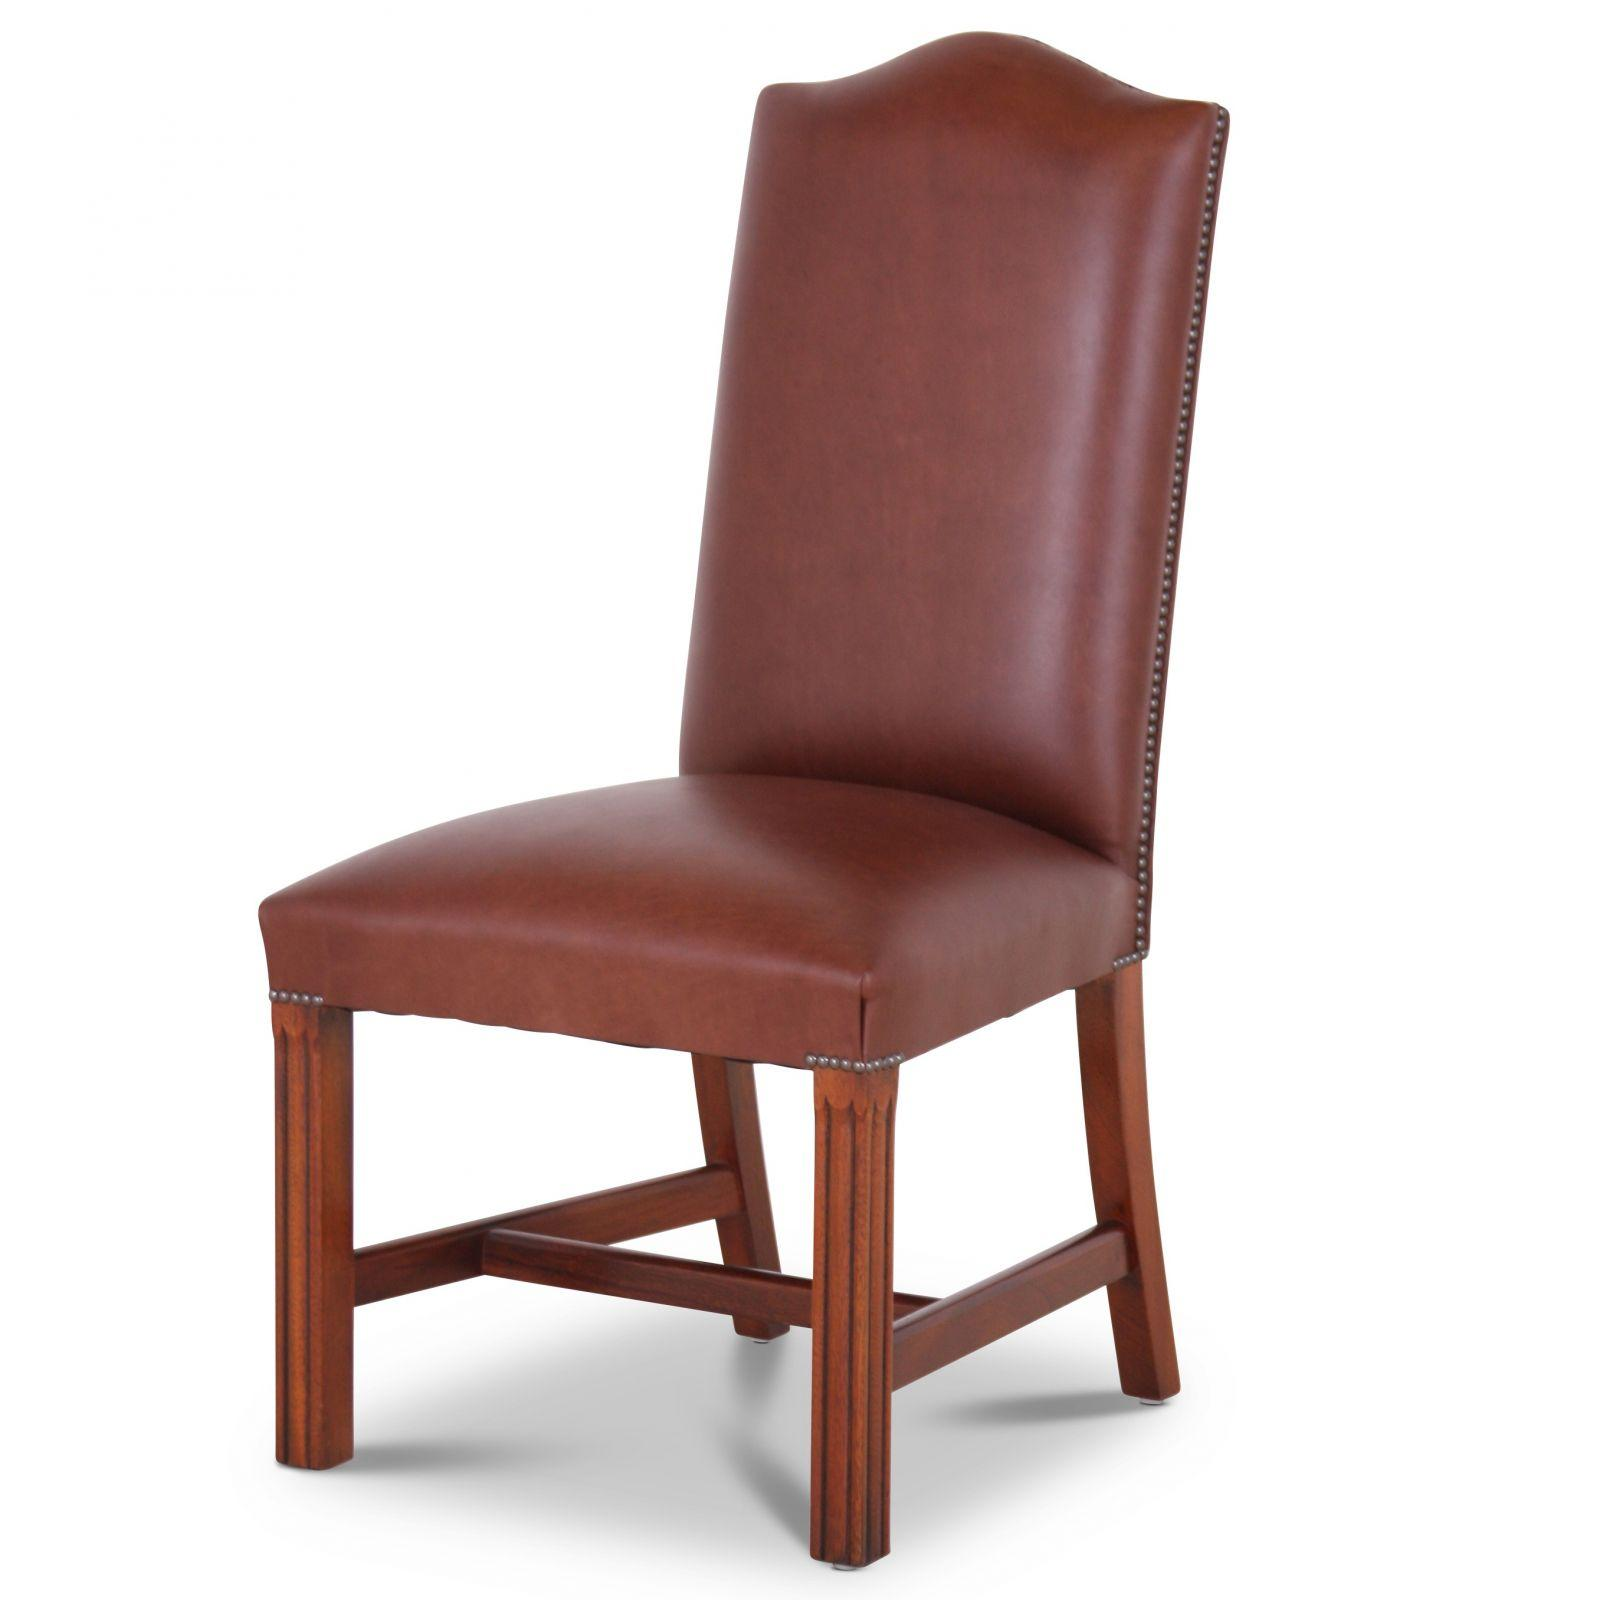 Leather Cathedral dining chair